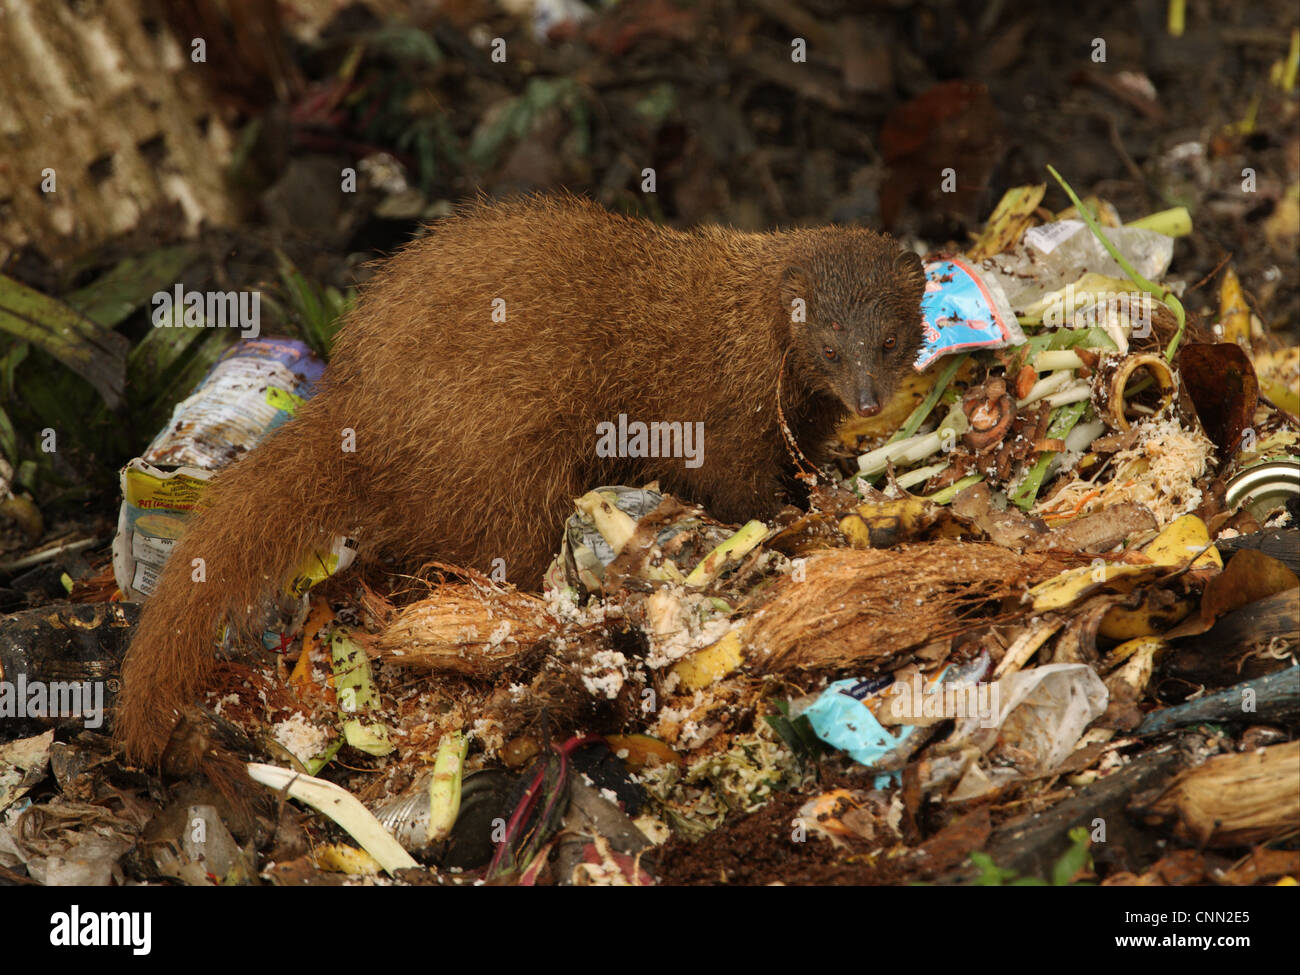 indian brown mongoose (herpestes fuscus) adult, feeding, scavenging